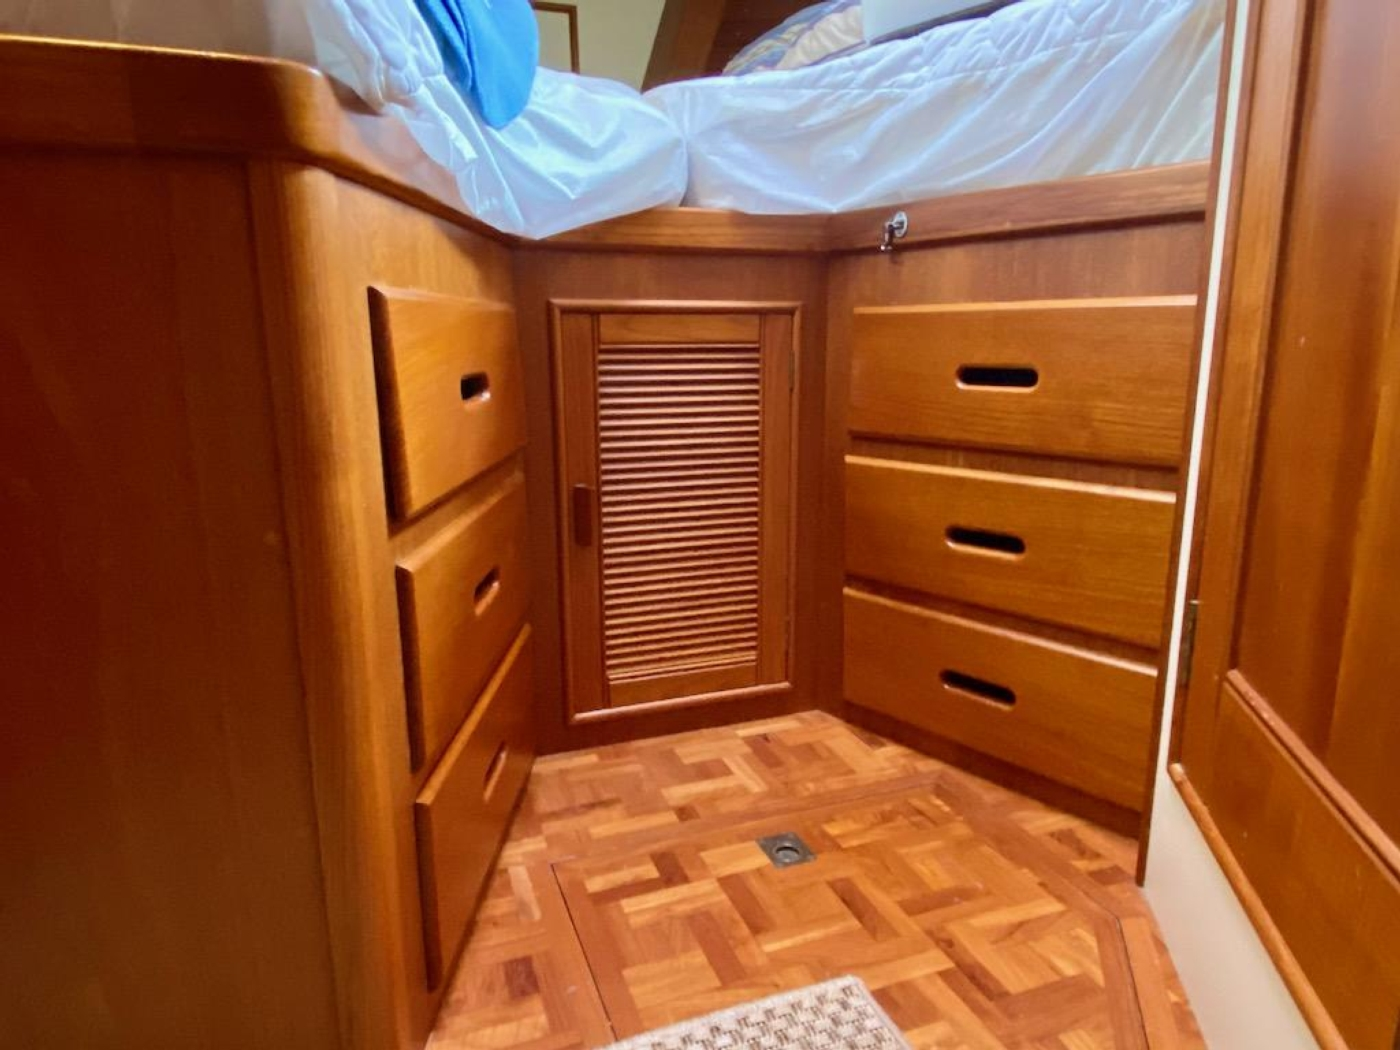 1998 Grand Banks 42 Classic, Fwd guest cabin storage 1